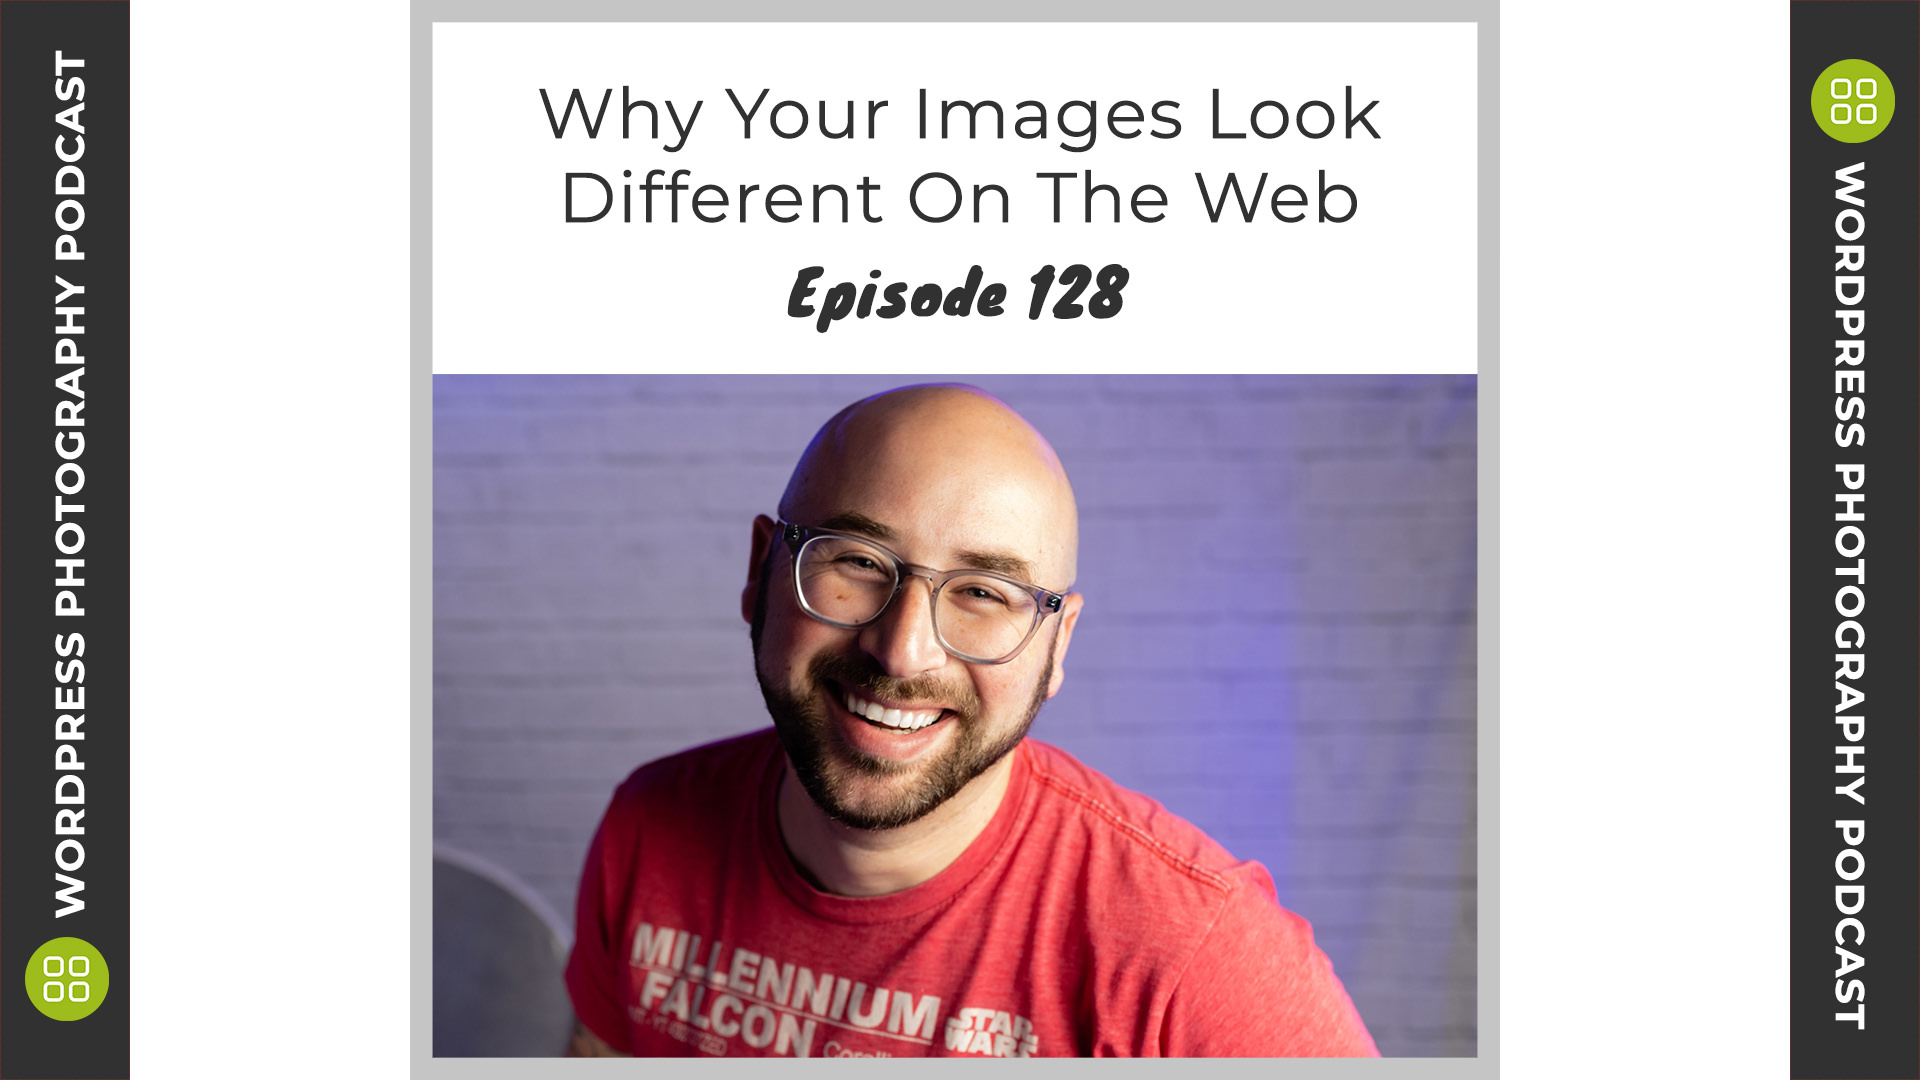 Episode 128 – Why Your Images Look Different On The Web